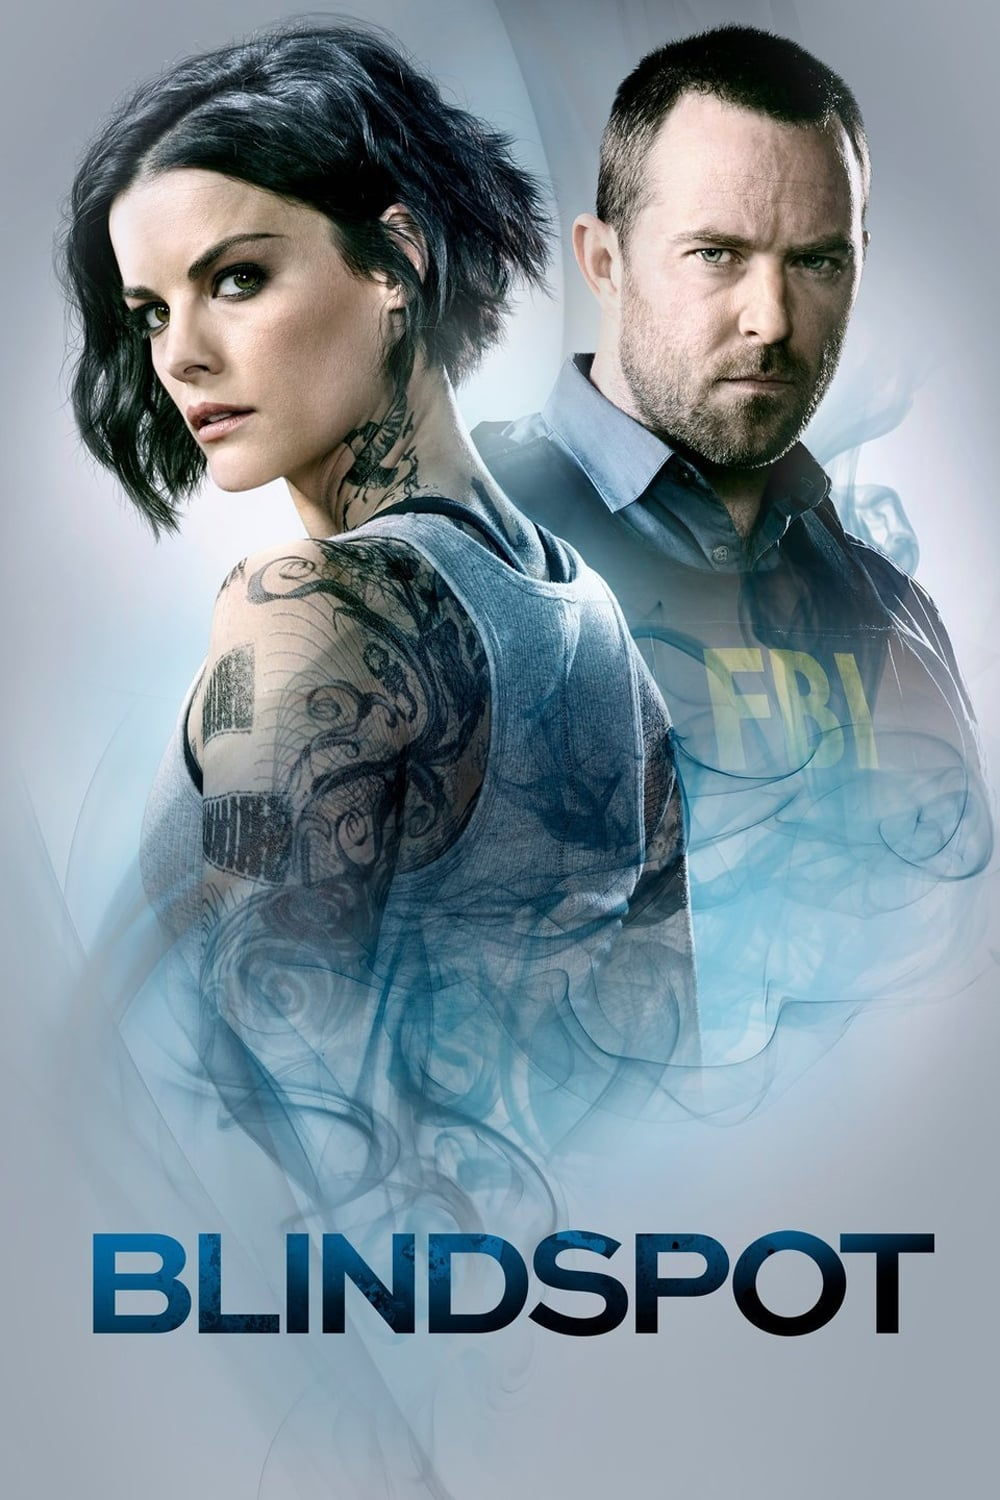 Blindspot 4ª Temporada (2018) Torrent - WEB-DL 720p e 1080p Dublado / Dual Áudio e Legendado Download